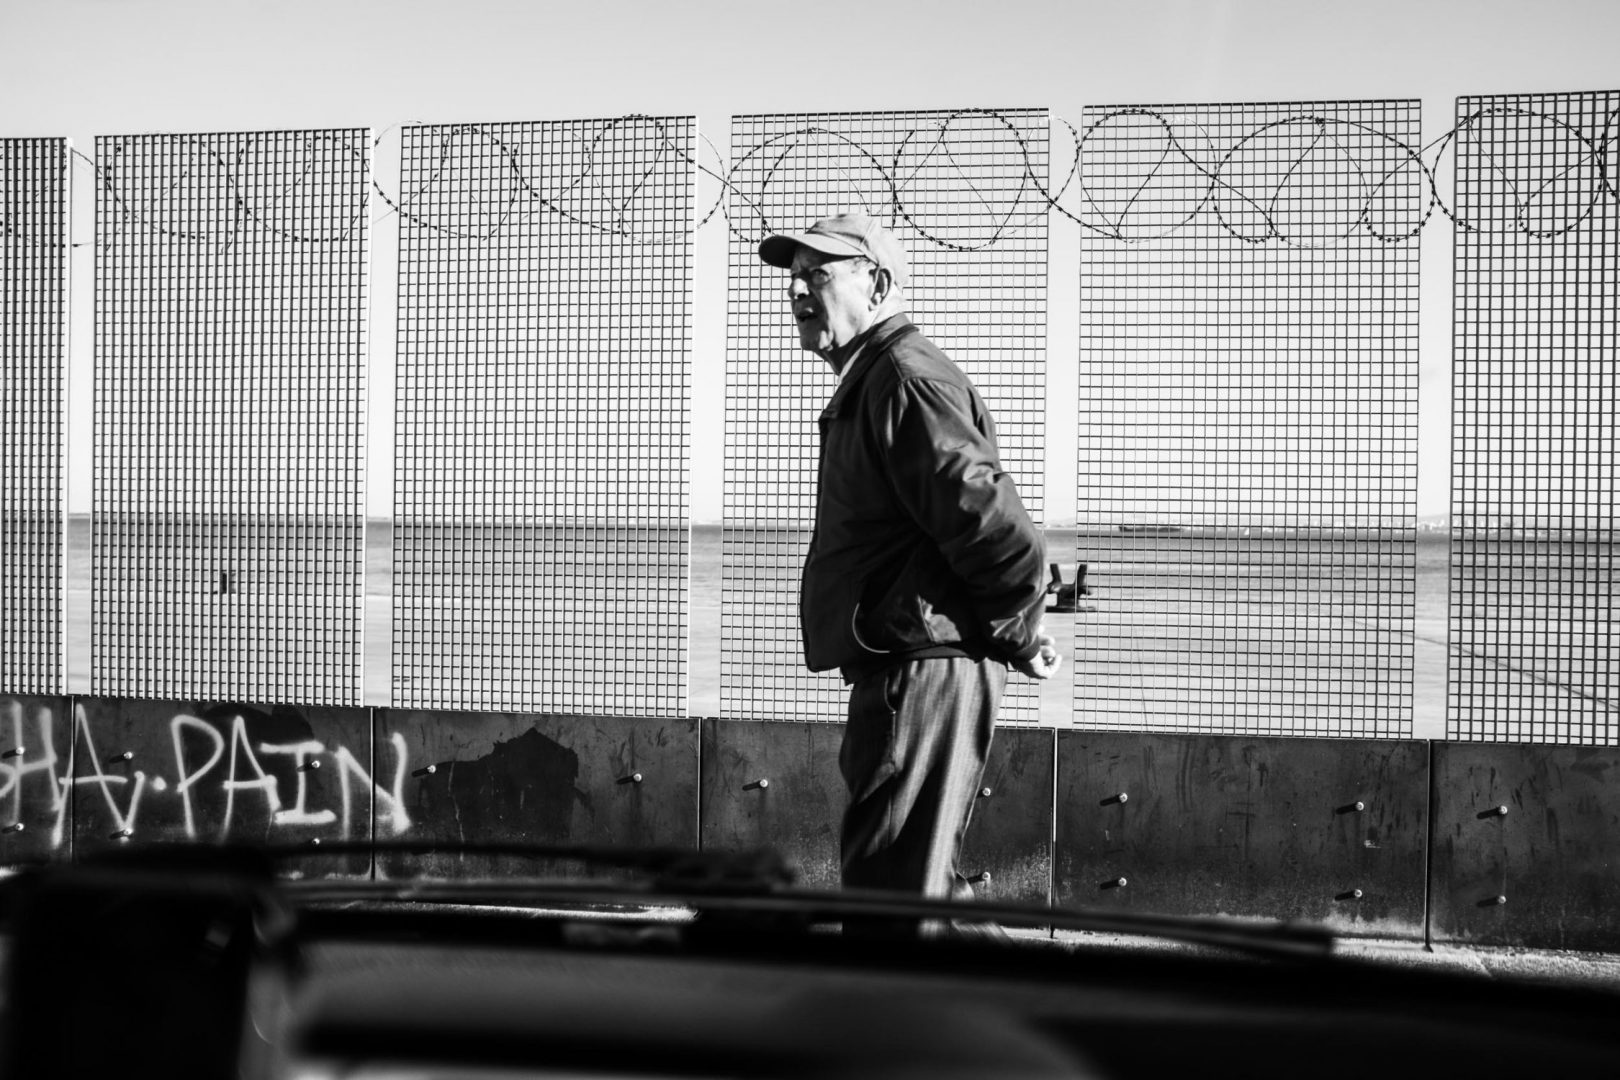 I was sitting in the car with my friend and suddenly this man passes right in front of us. The graphic lines of the fence, his expression, the framing through the car window, all made for a nice frame.